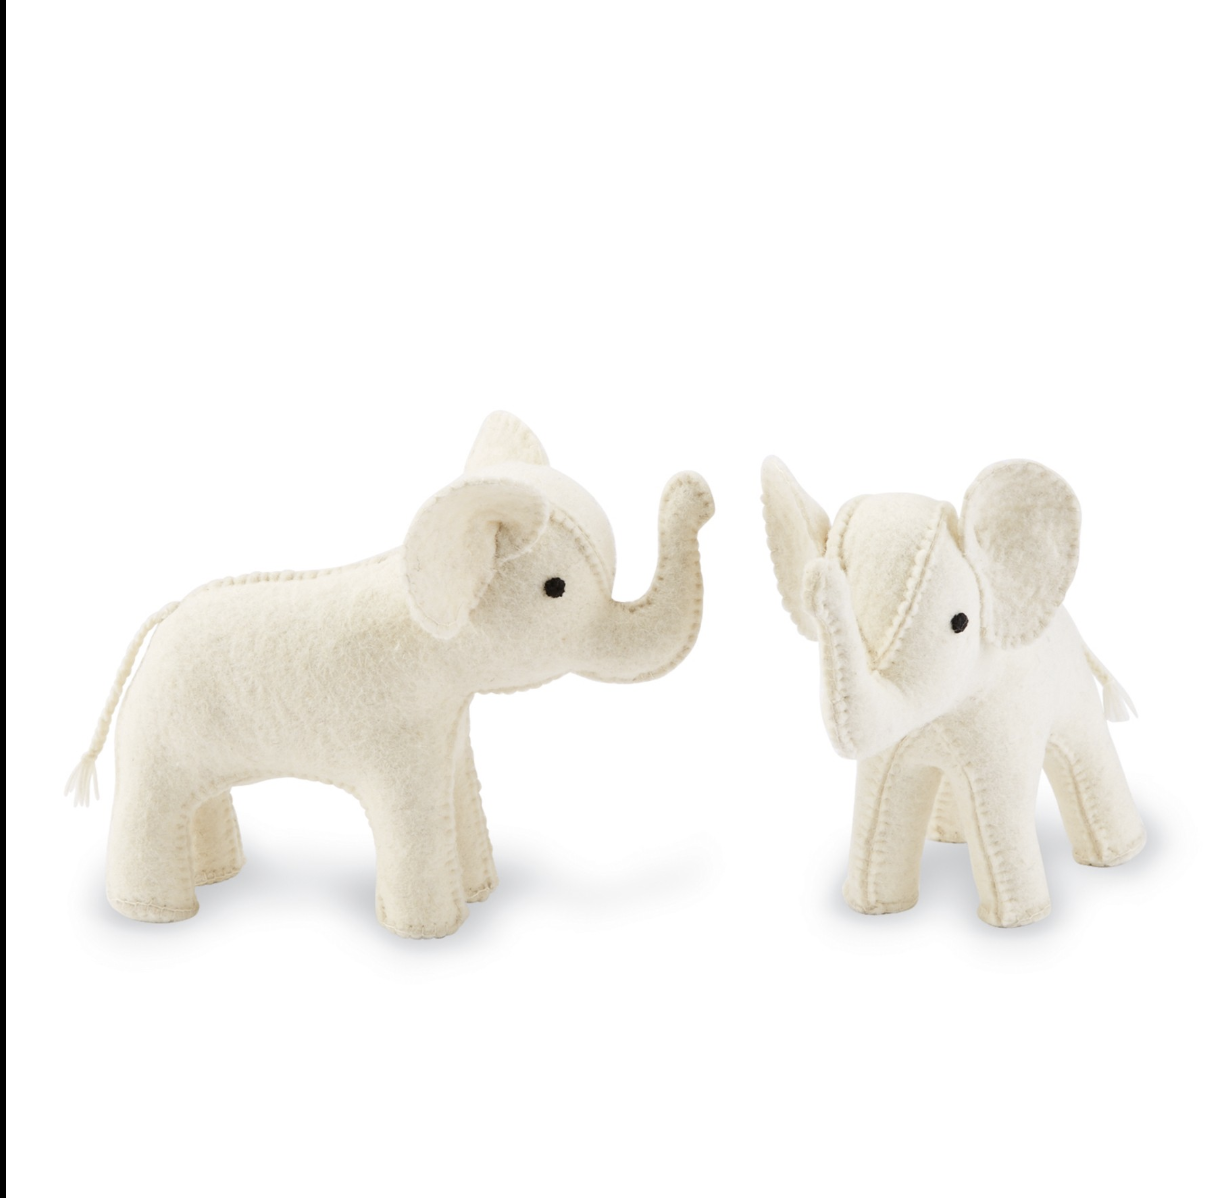 Mud Pie Elephant Bookend - Ivory